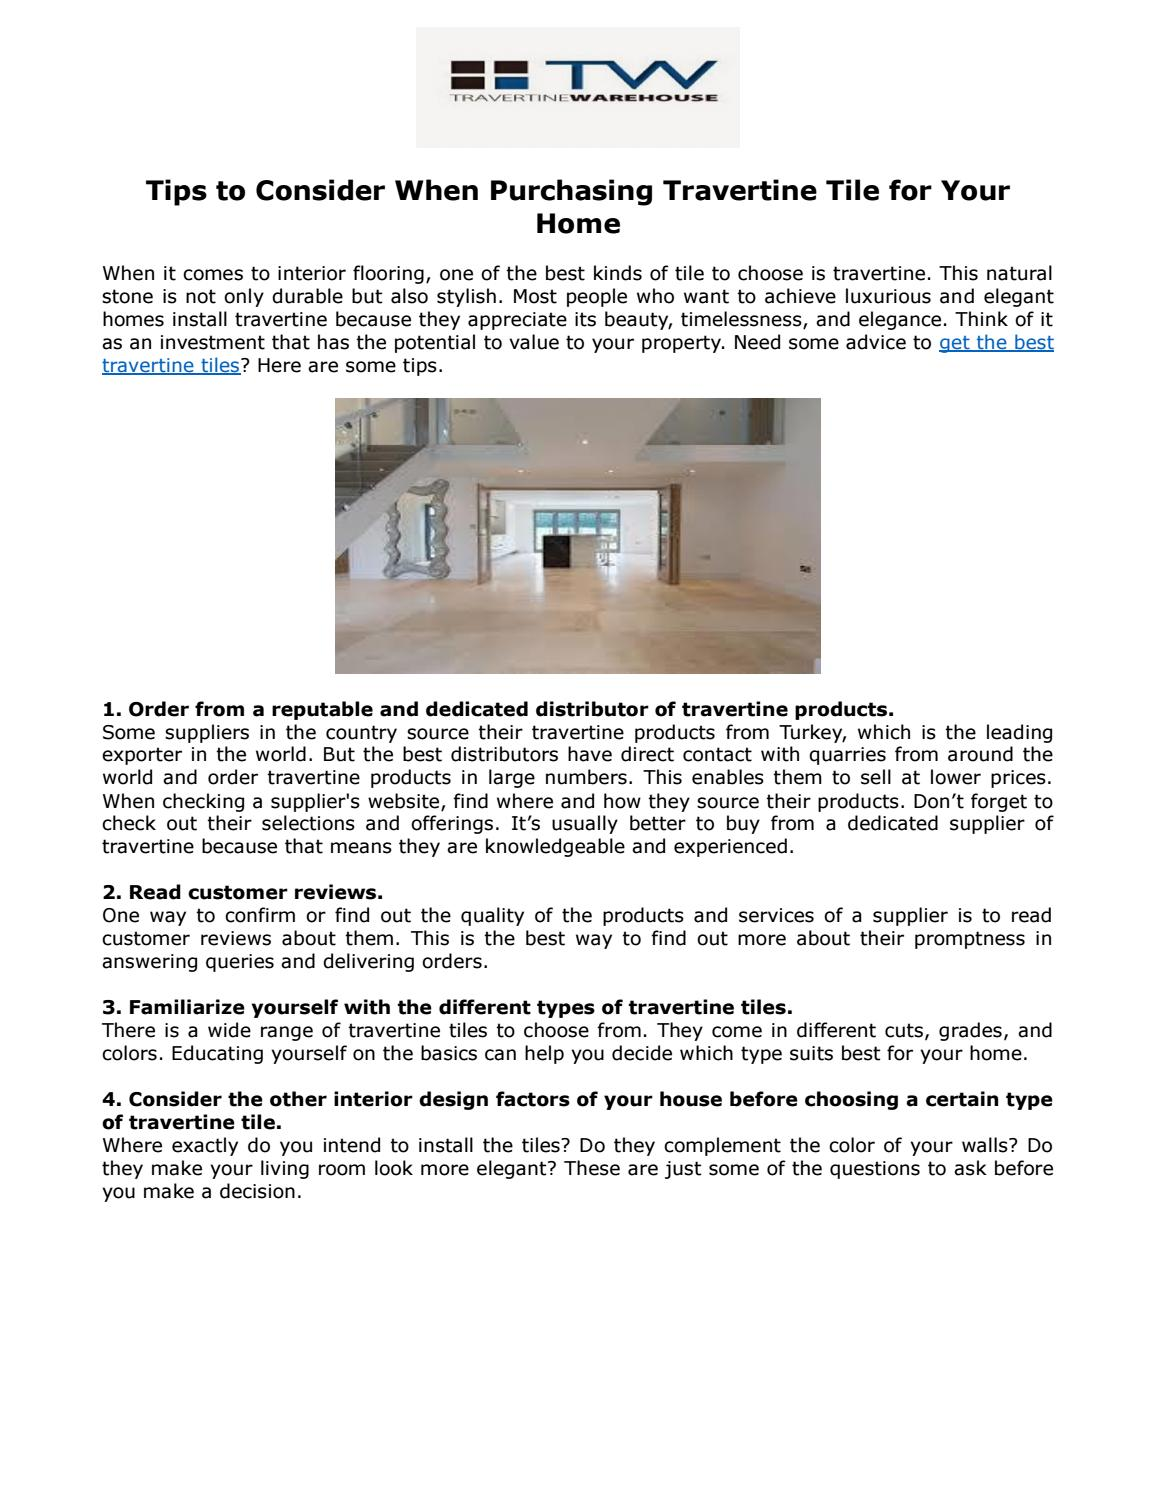 Tips To Consider When Purchasing Travertine Tile For Your Home By Travertine  Warehouse   Issuu